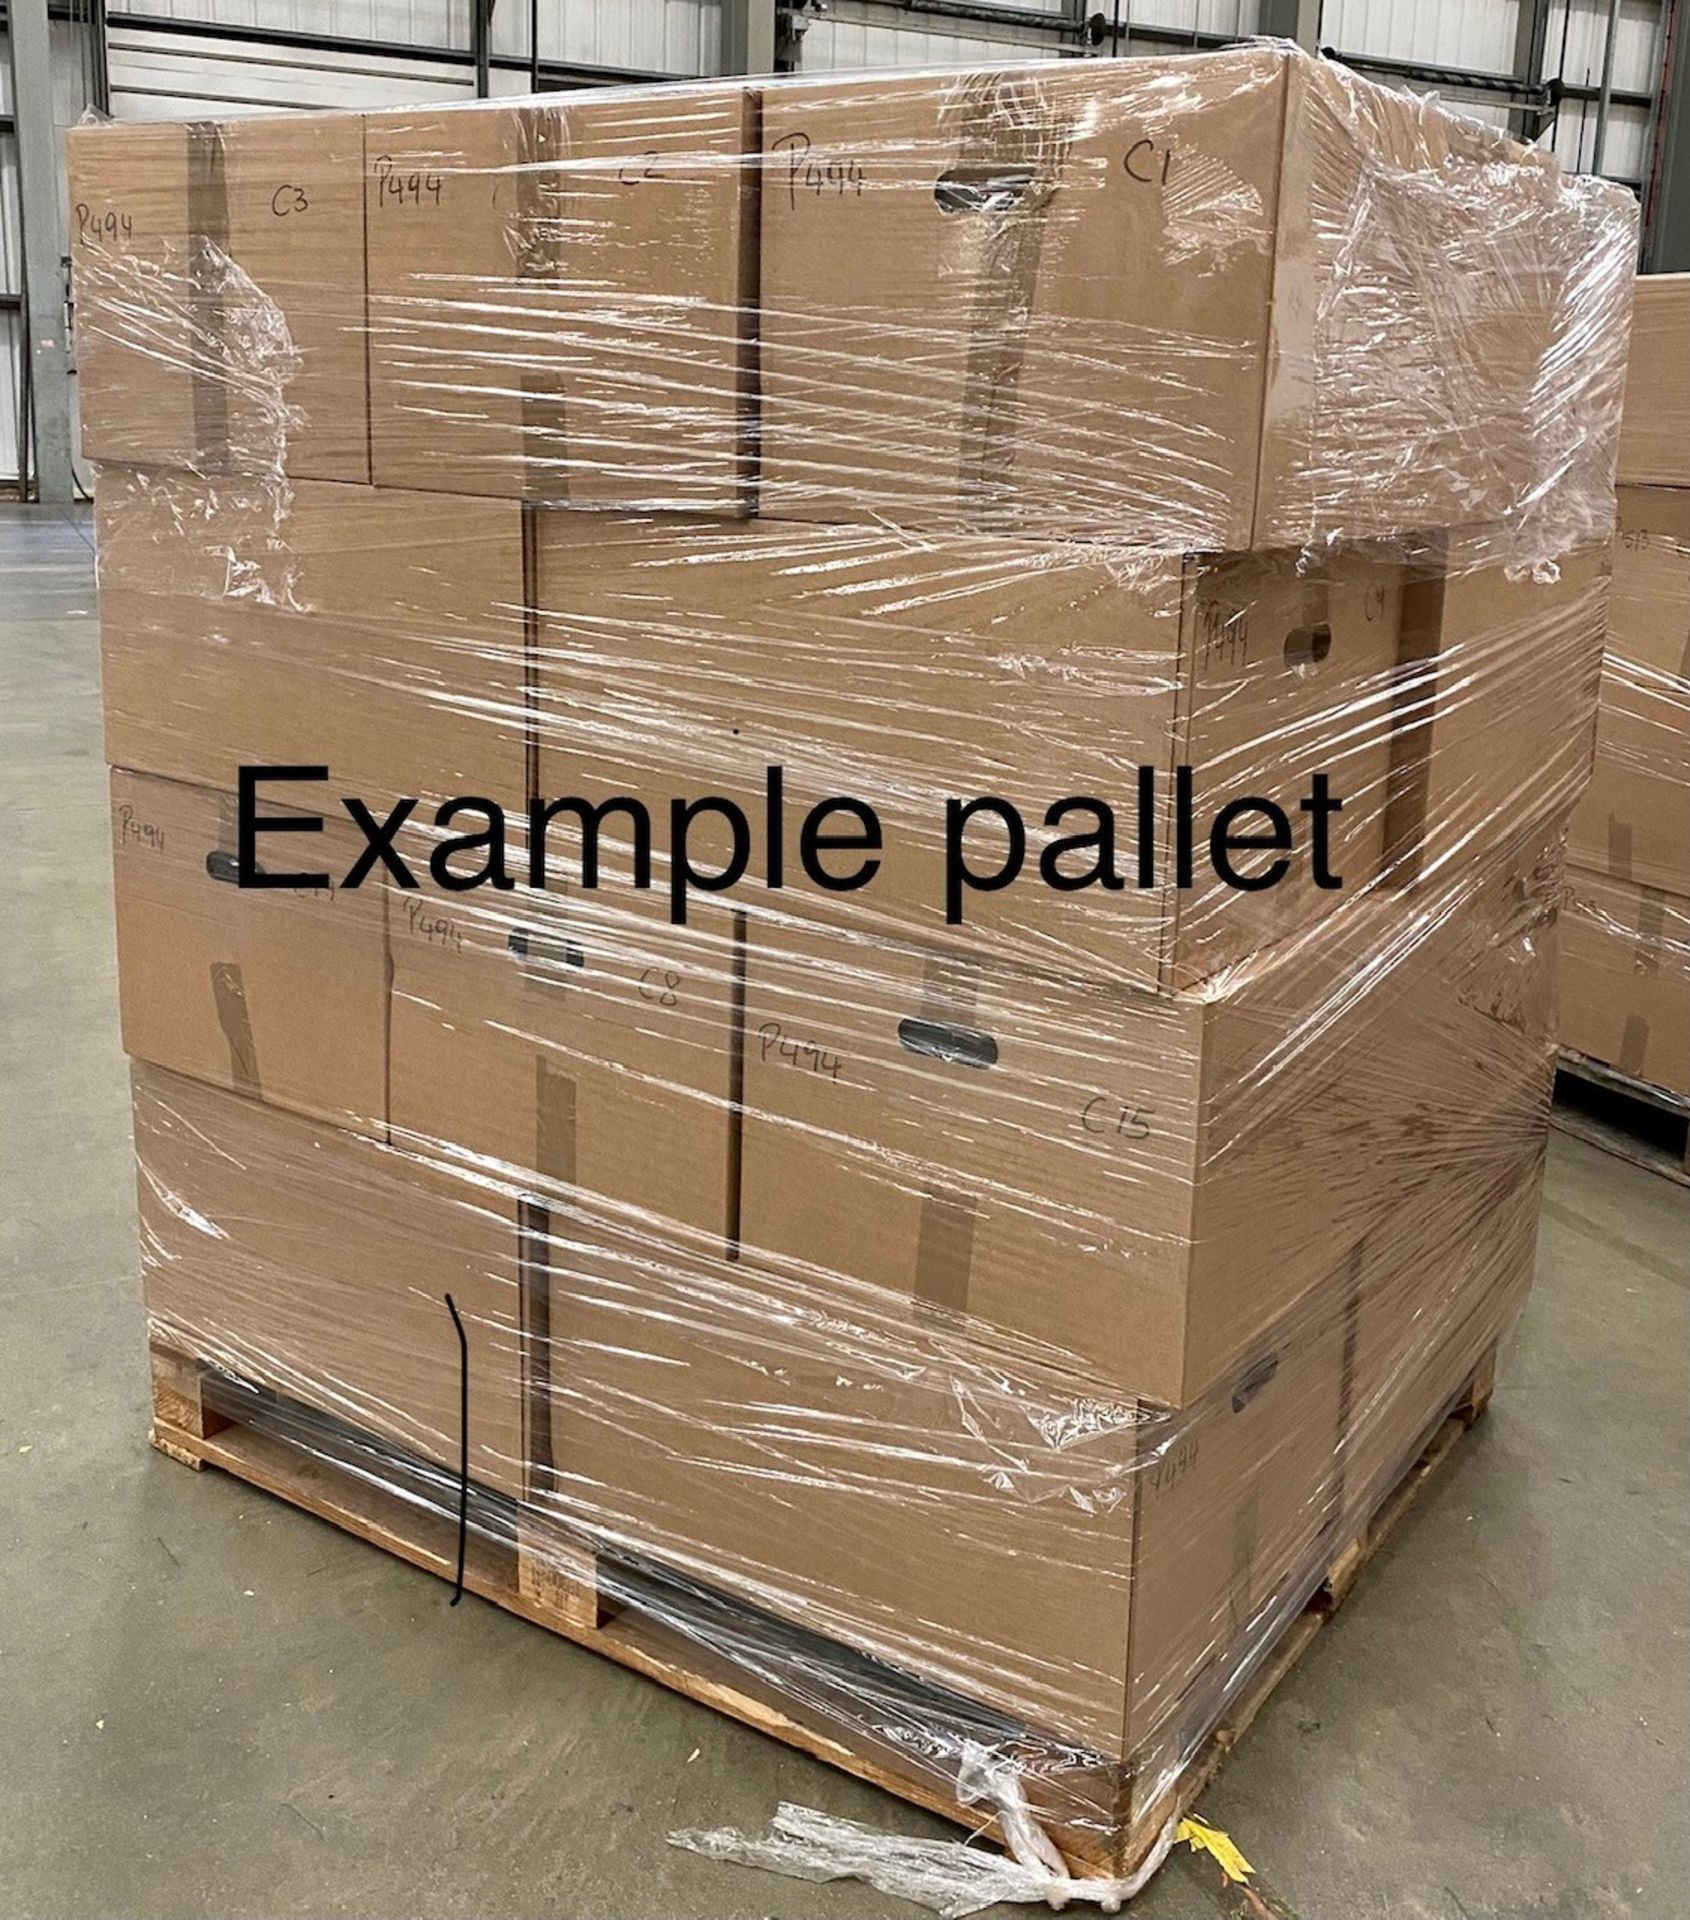 1 x mixed pallet = 307 items of Grade A M&S Womenswear Clothing. Total RRP £4999.00 - Image 11 of 12